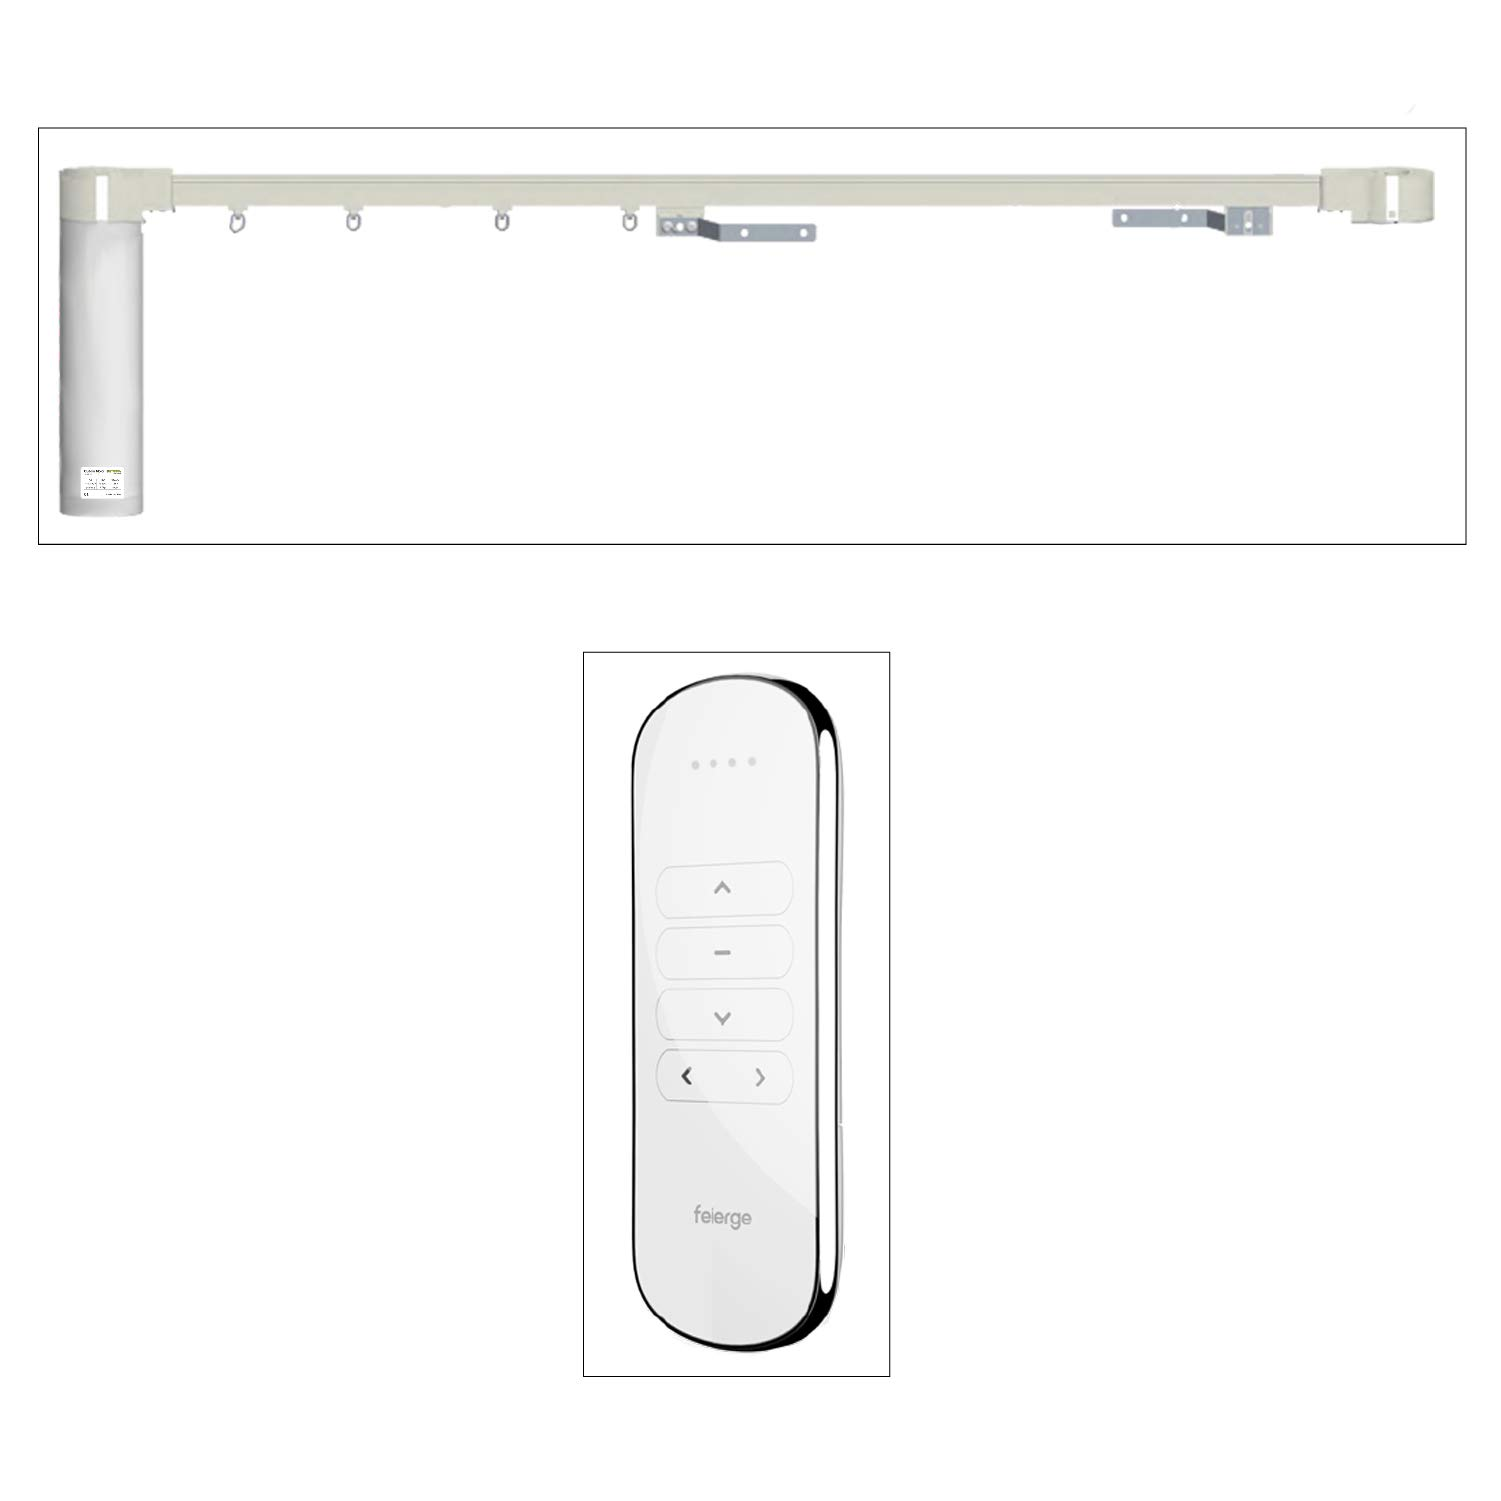 Ryosva SmartThings - Smart WiFi Curtain Motor Built-in Integration with Amazon Alexa and Google Home, Remote Control Smart Motorized Electric Curtain Tracks Pre-Assembly (197'' (500cm)) by Ryosva SmartThings